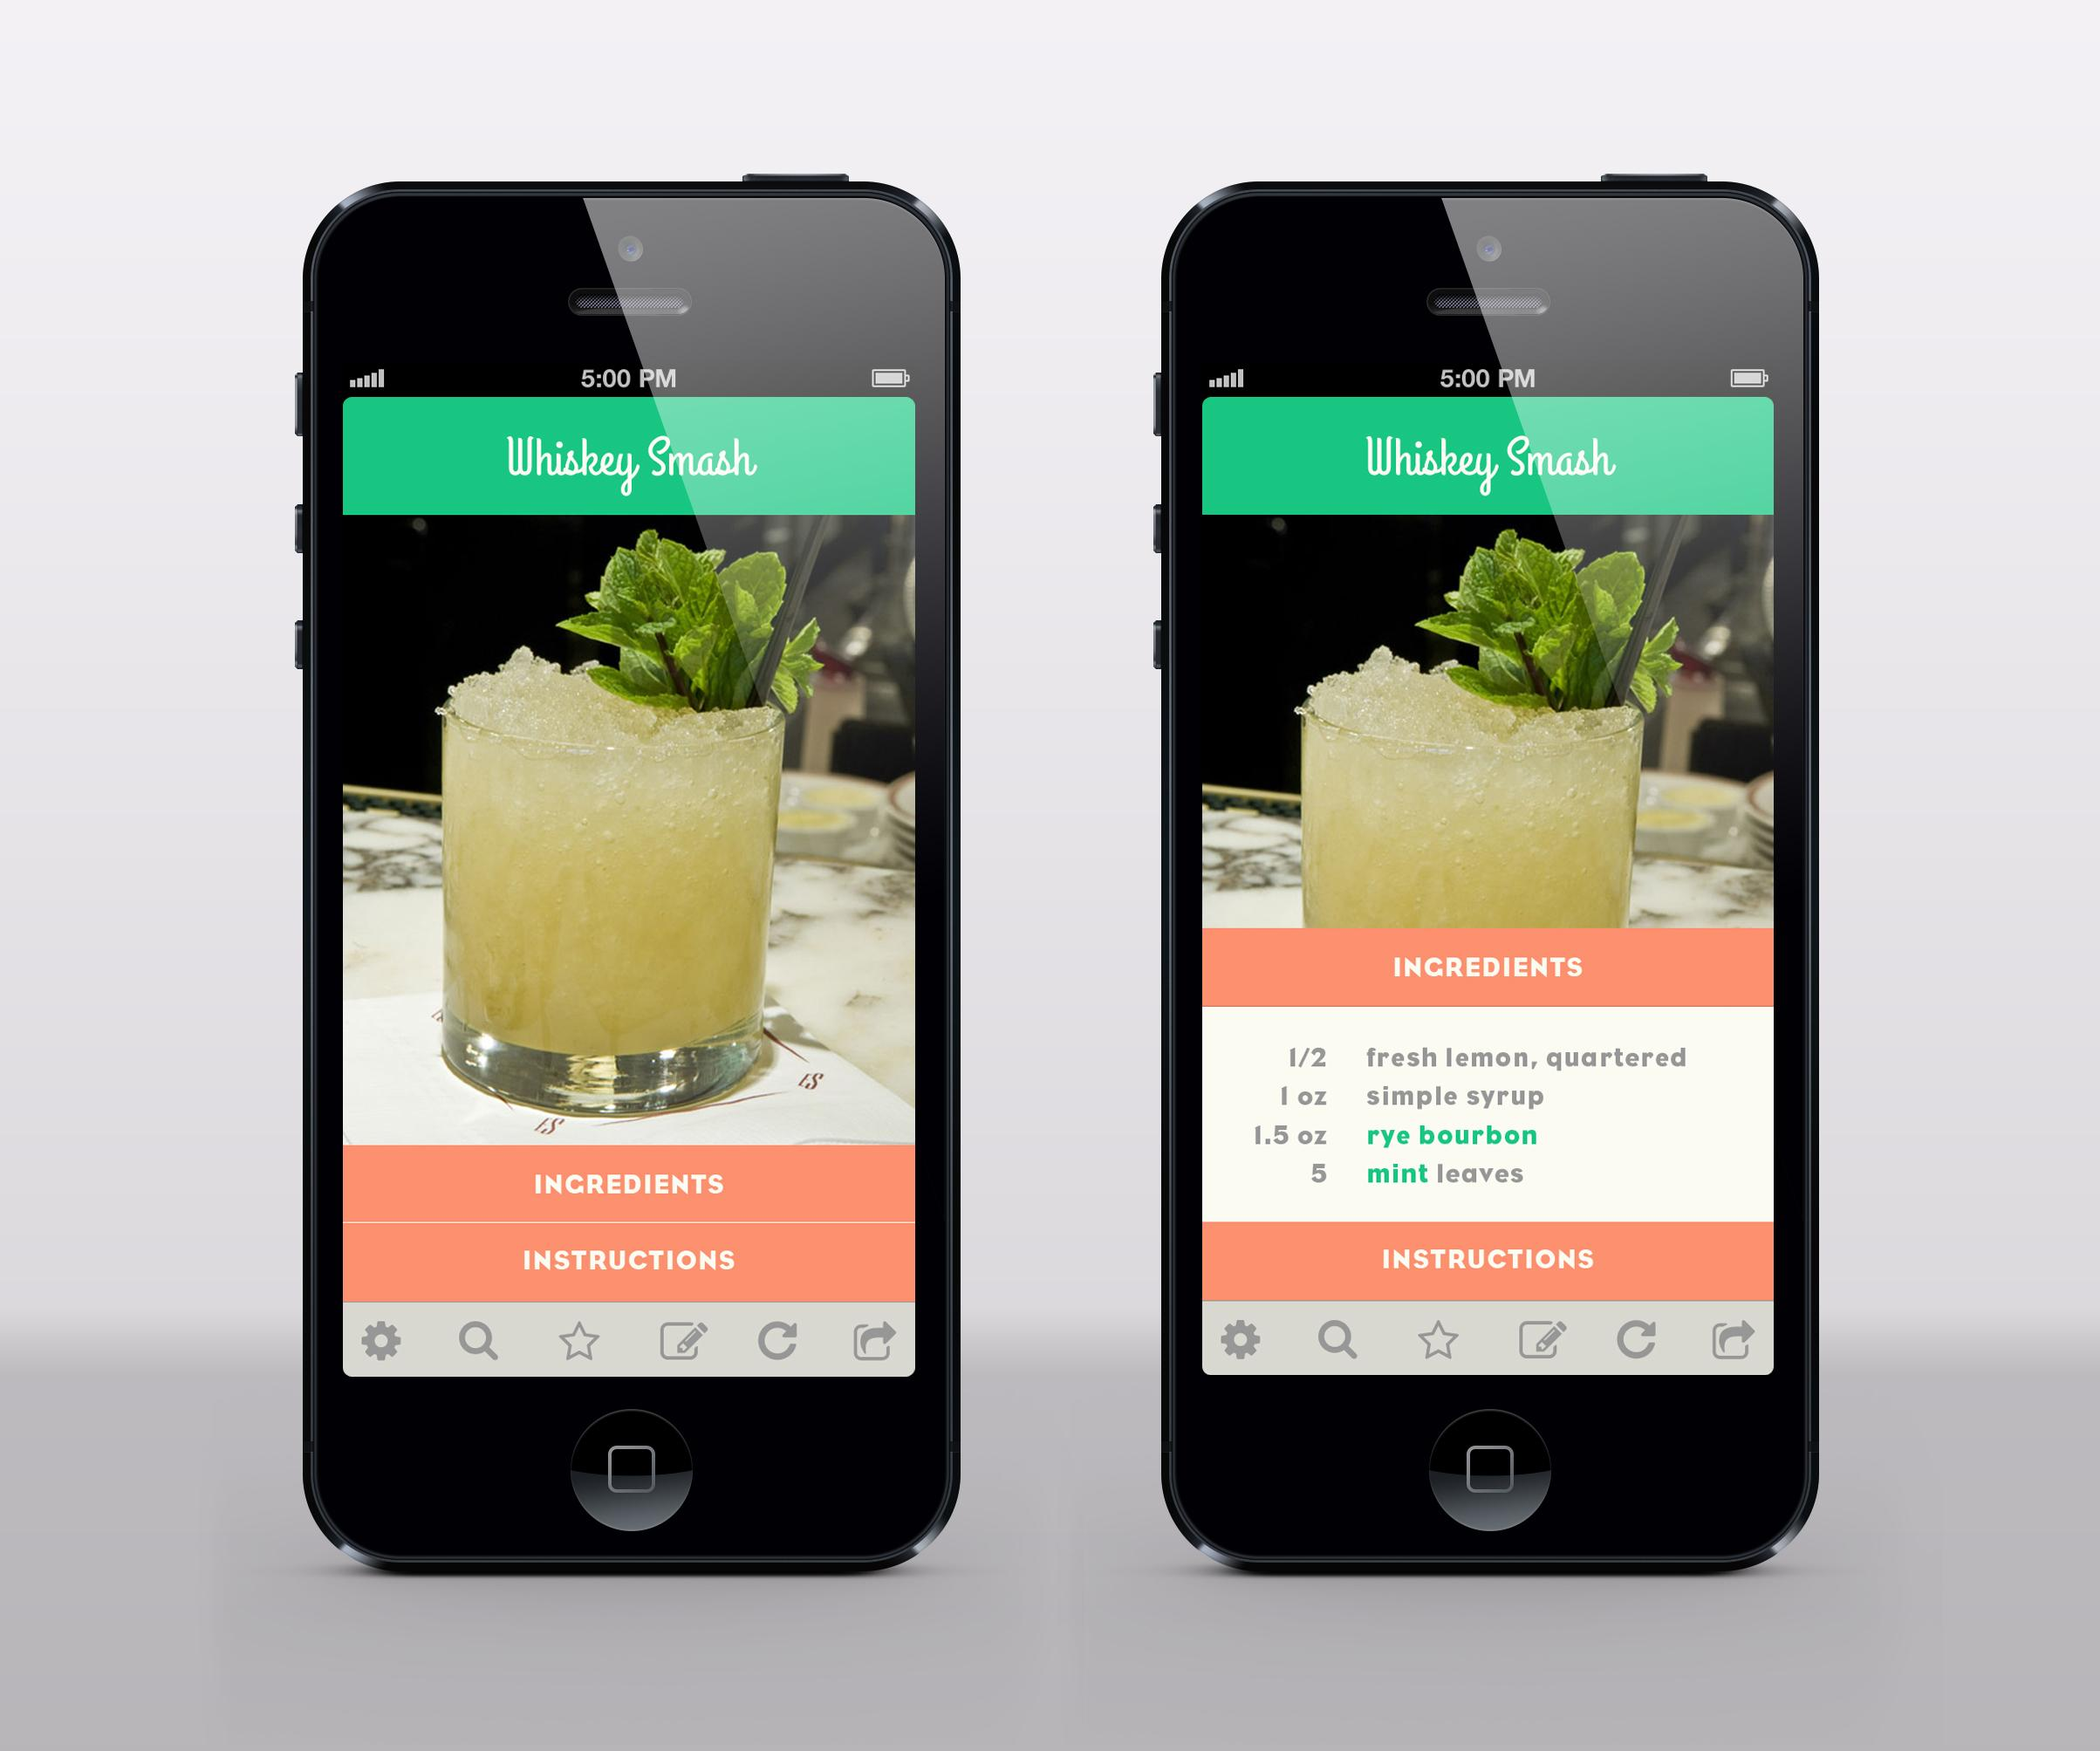 Some Alcohol-Focused Mobile App - image 6 - student project